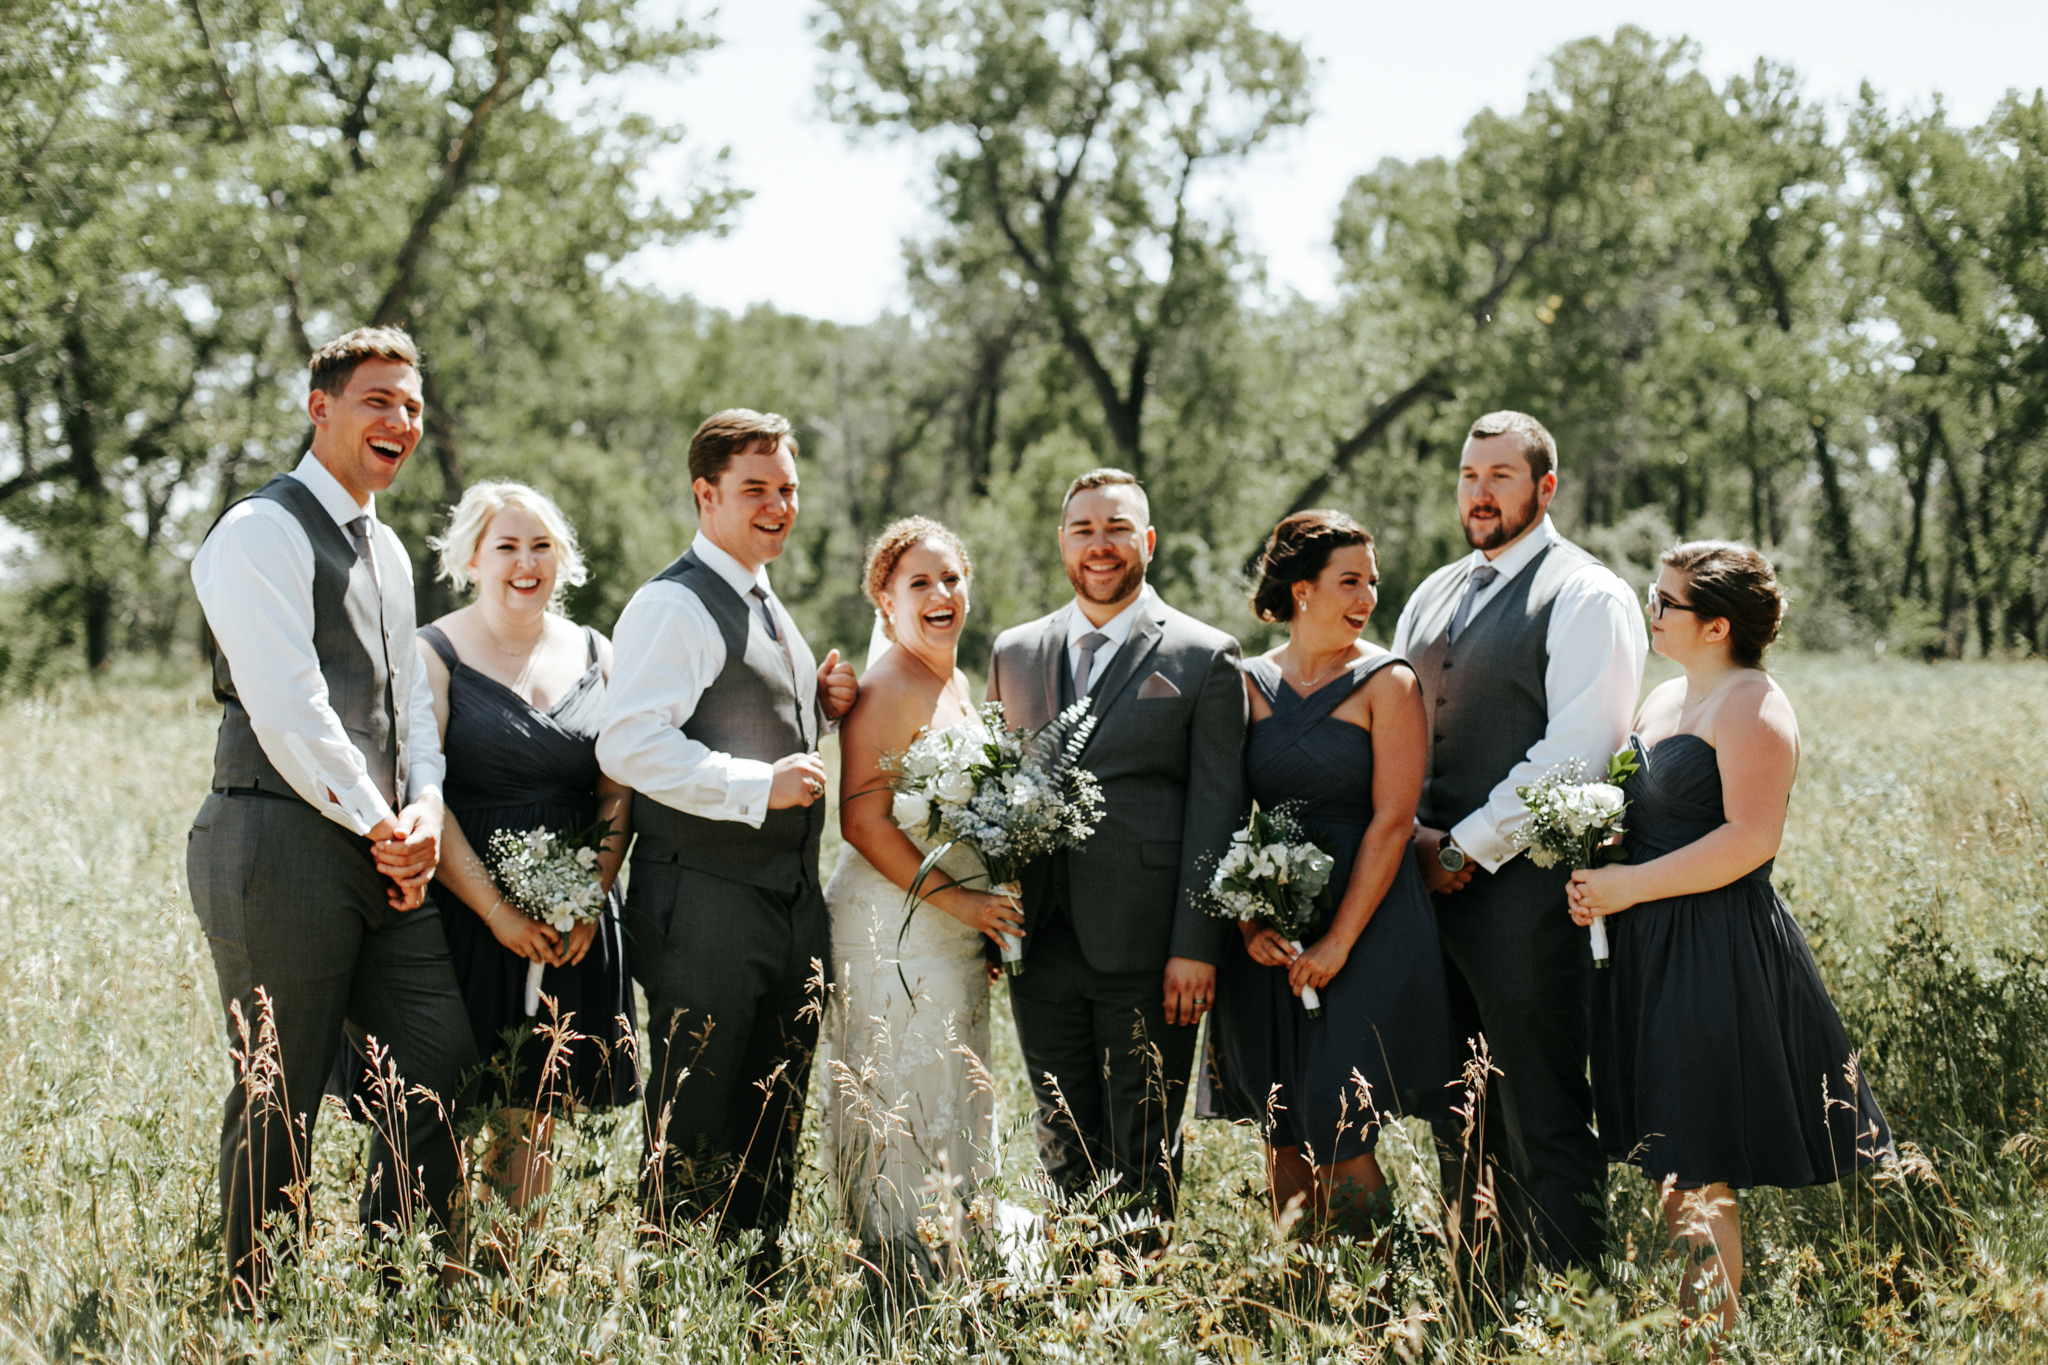 lethbridge-wedding-photographer-love-and-be-loved-photography-trent-danielle-galt-reception-picture-image-photo-100.jpg